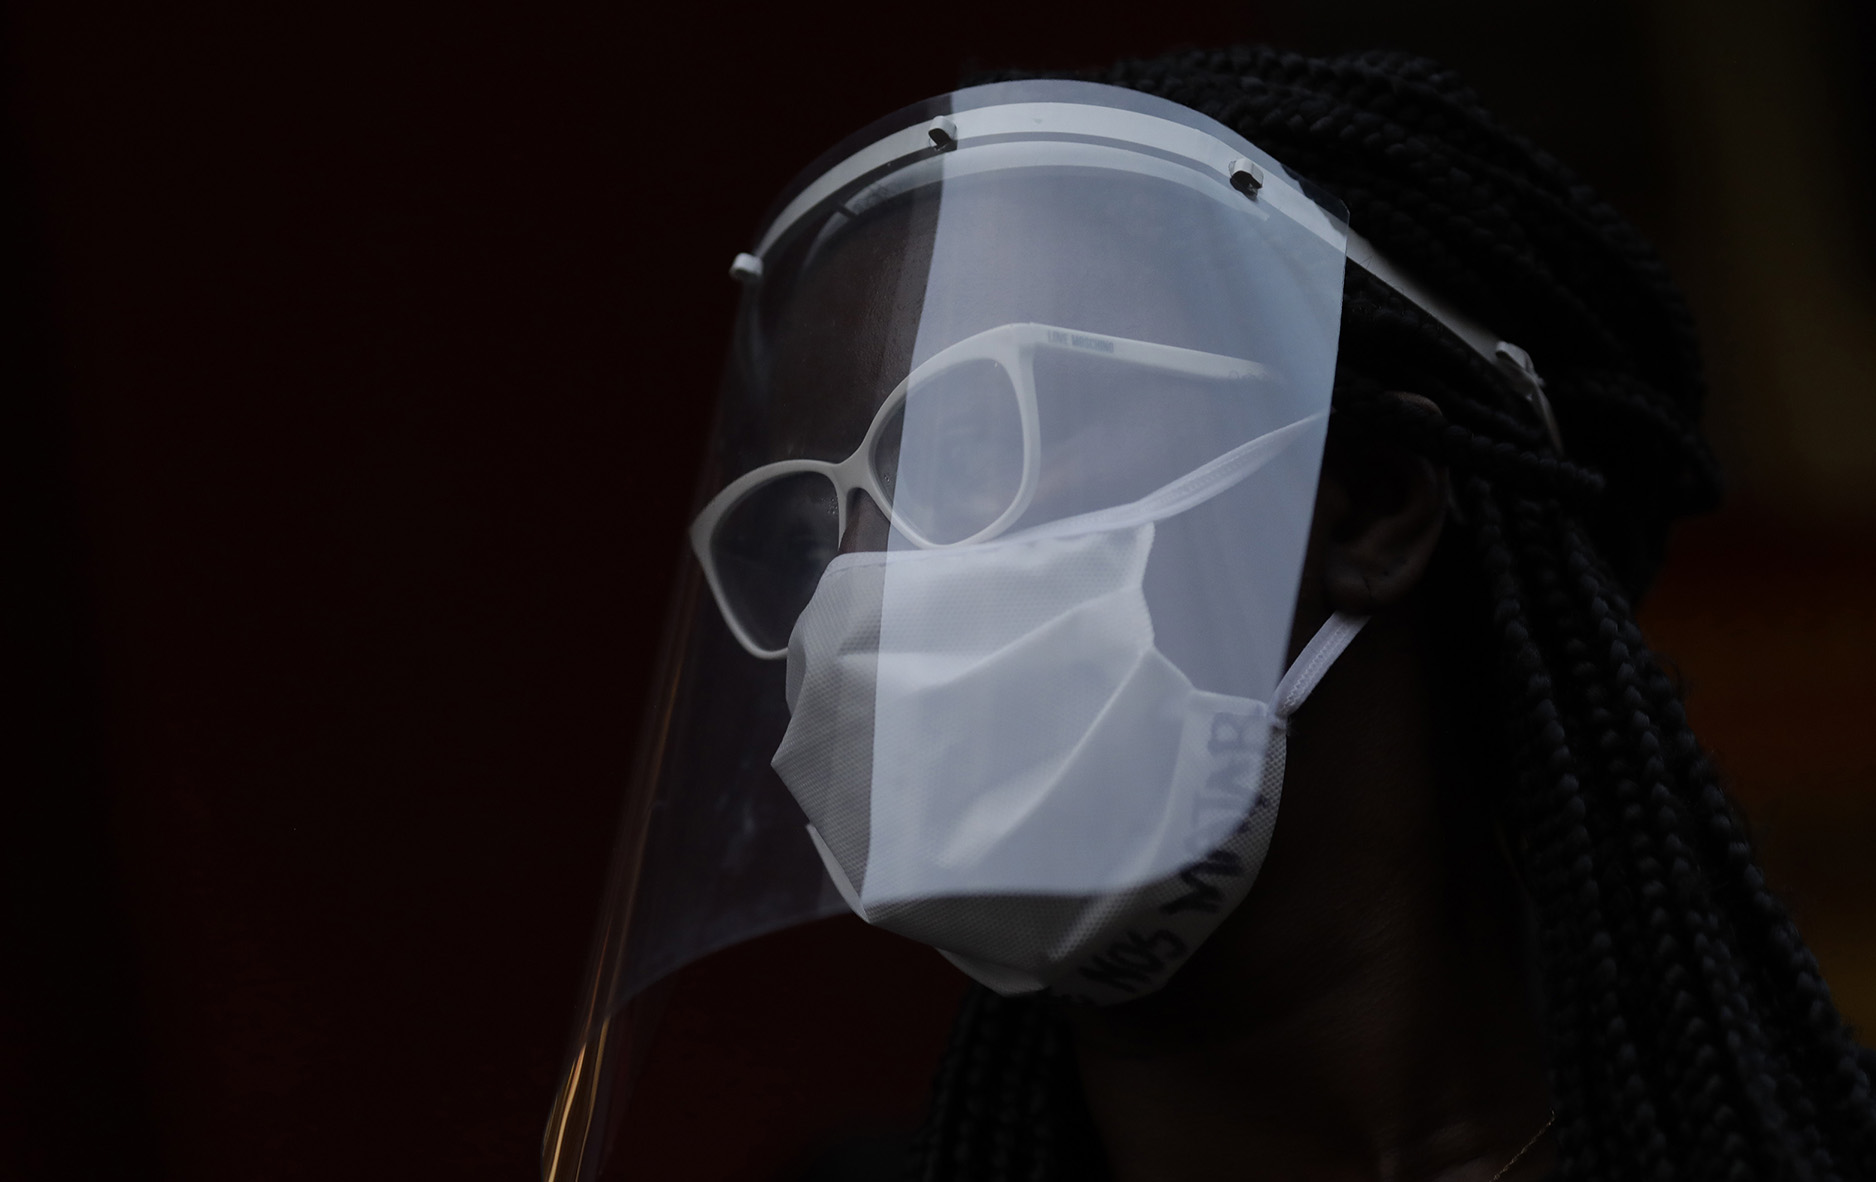 Coronavirus: Face shields offer less protection for others than regular masks study finds – Fox News